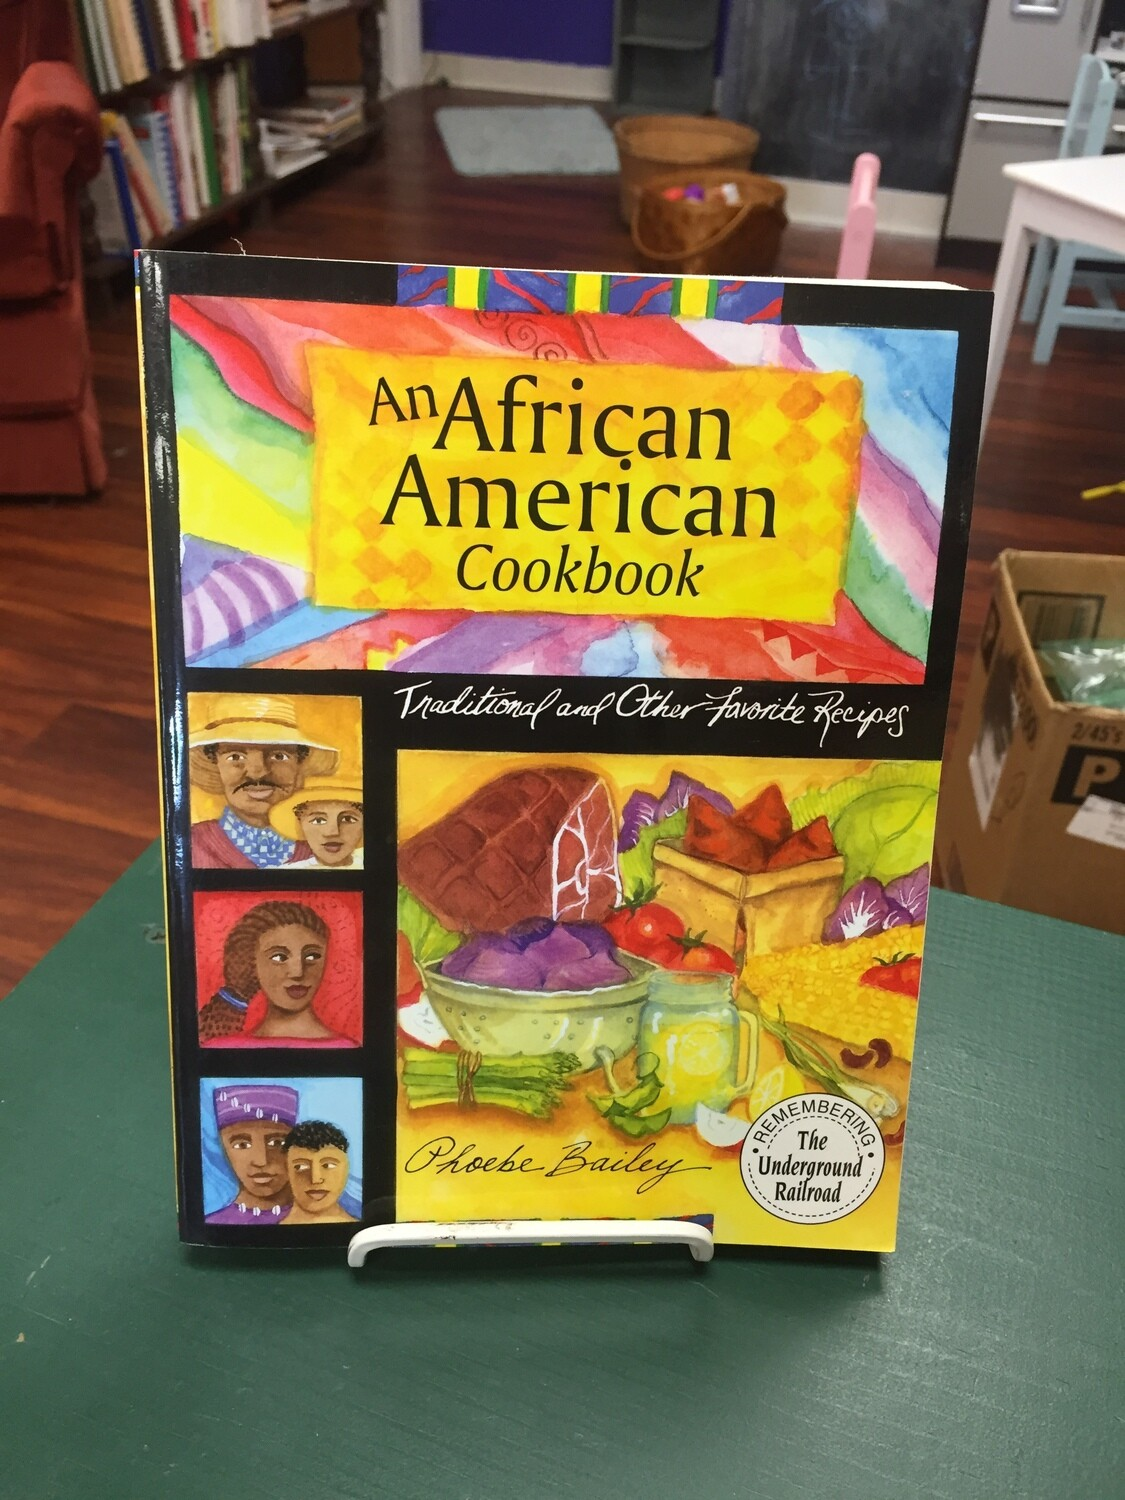 The African-American Cookbook